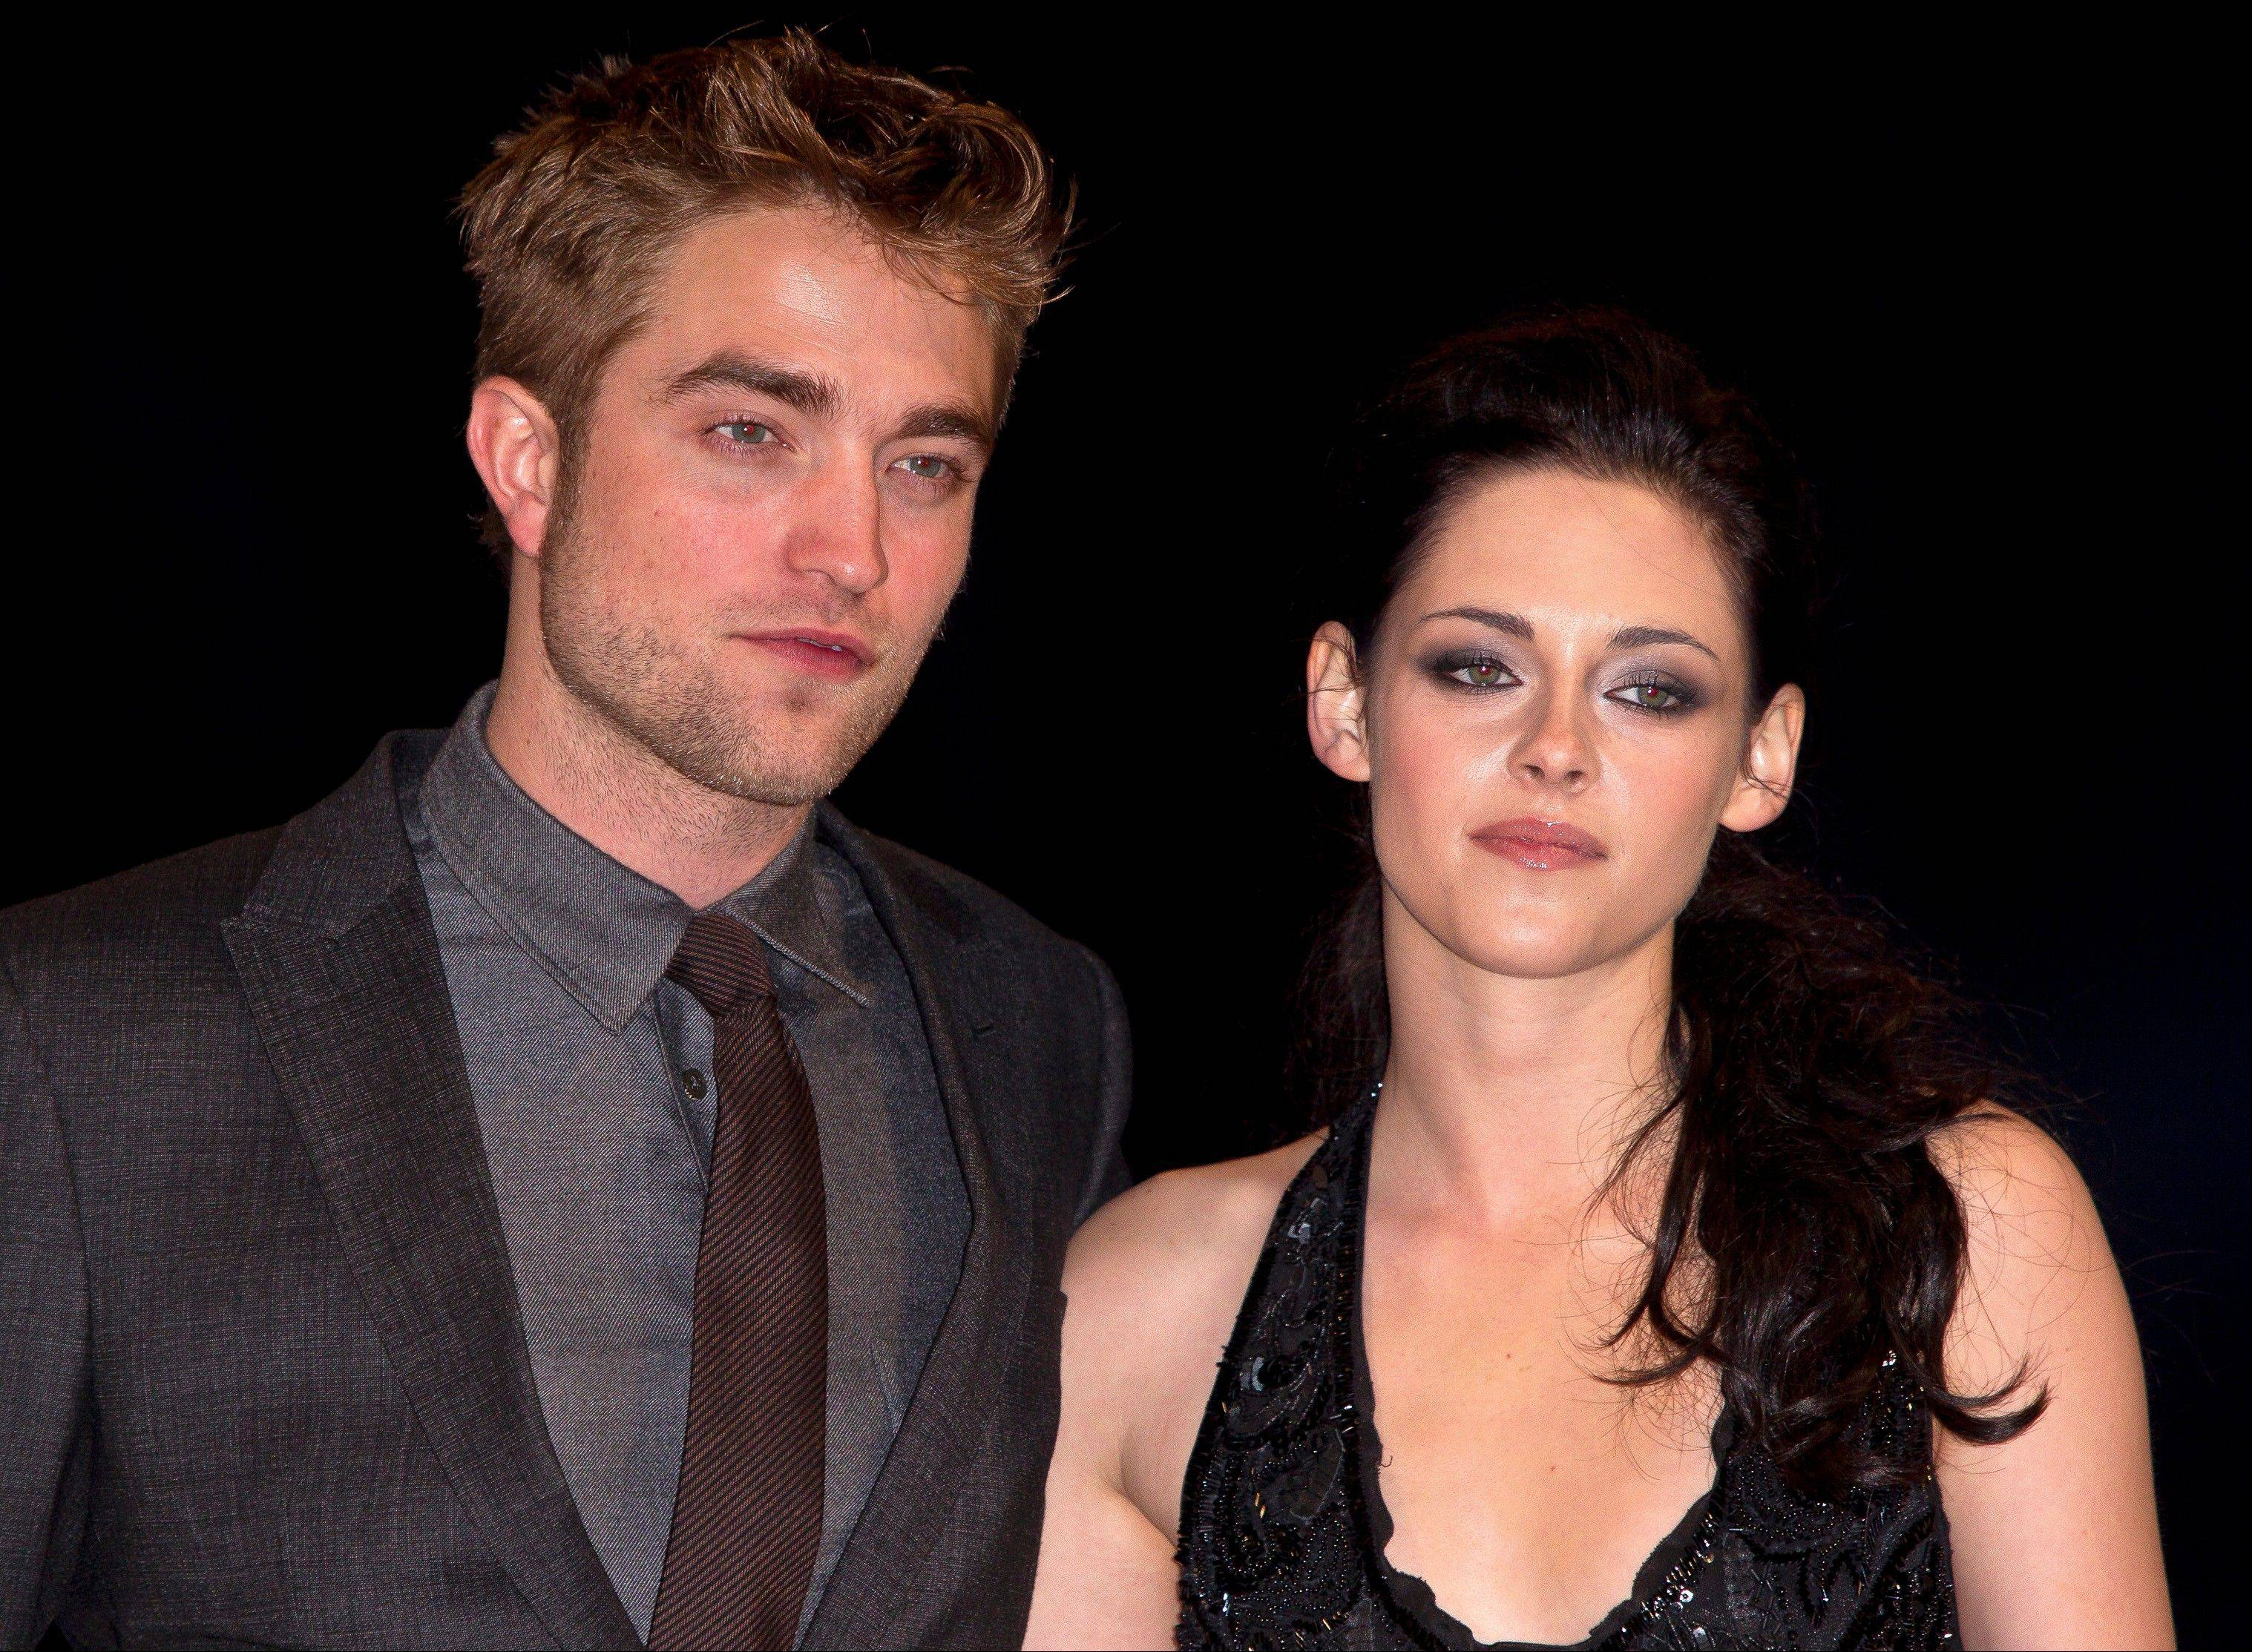 Robert Pattinson and Kristen Stewart arrive at the UK film premiere of �Twilight Breaking Dawn Part 1� at Westfield Stratford in east London. On Wednesday, Kristen Stewart and director Rupert Sanders apologized publicly to their loved ones following reports of infidelity.